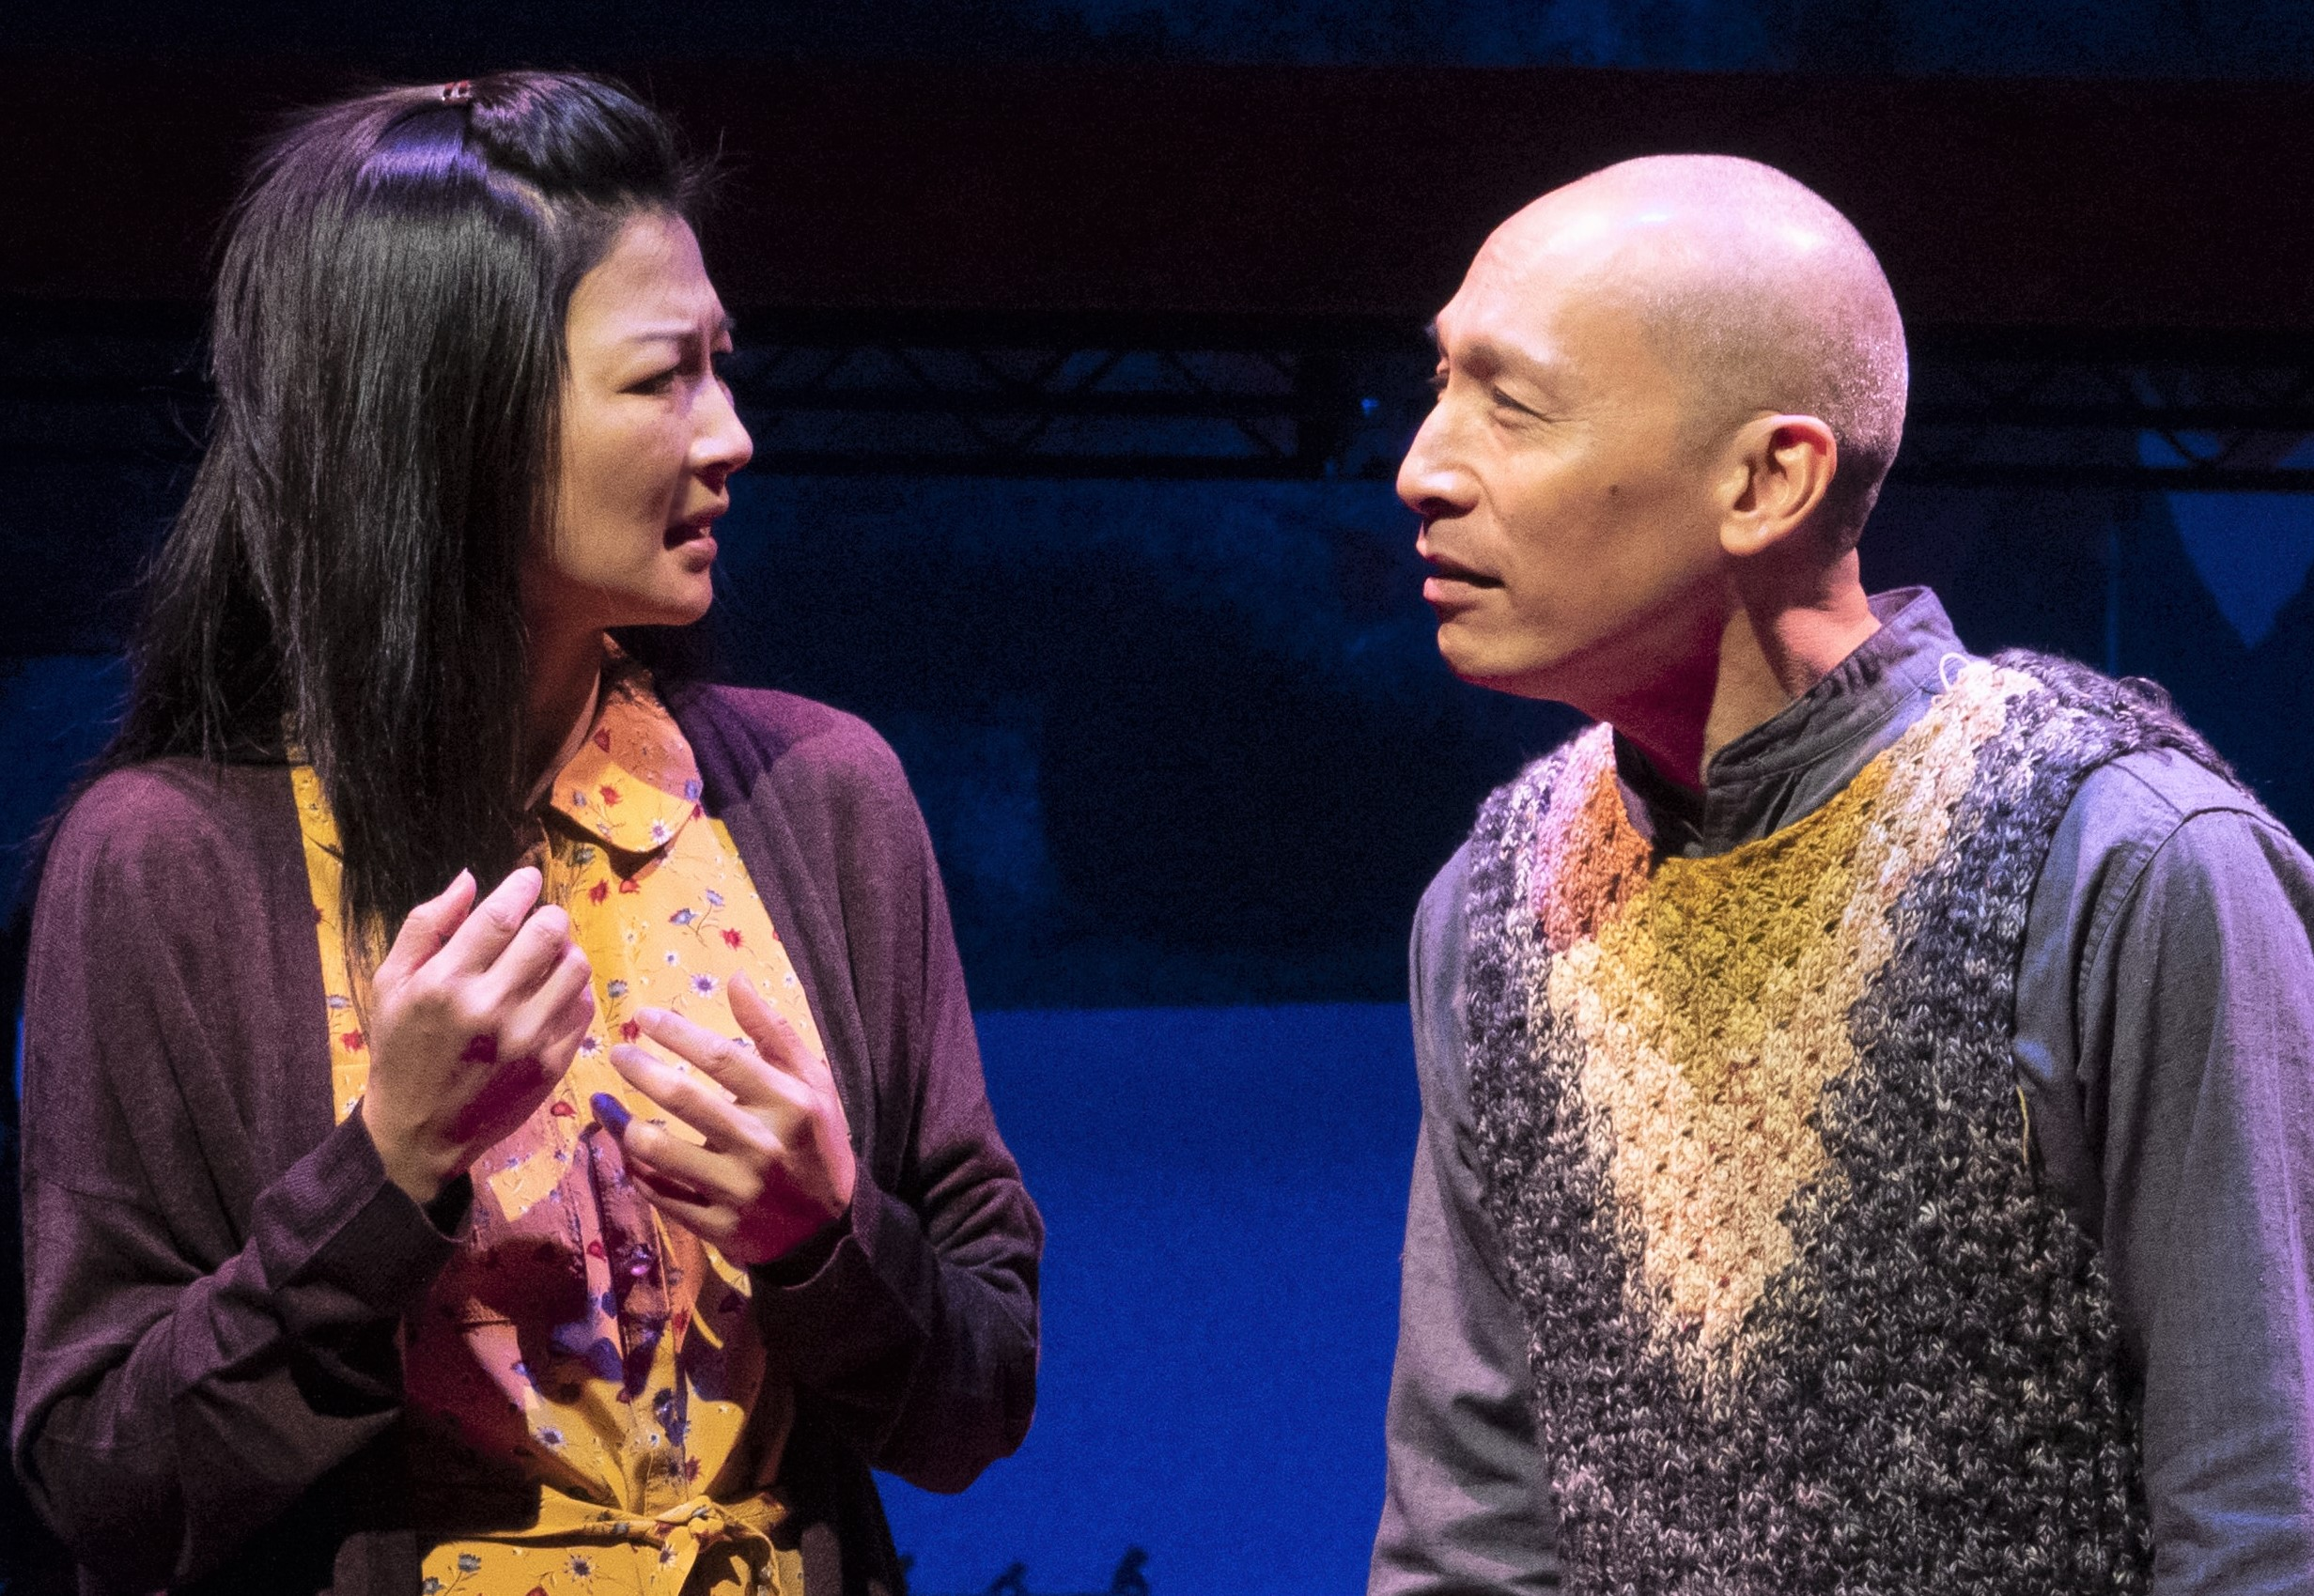 Yoo Nanhee speaks with an imagined version of her father, played by Francis Jue. Photographs by Joan Marcus.